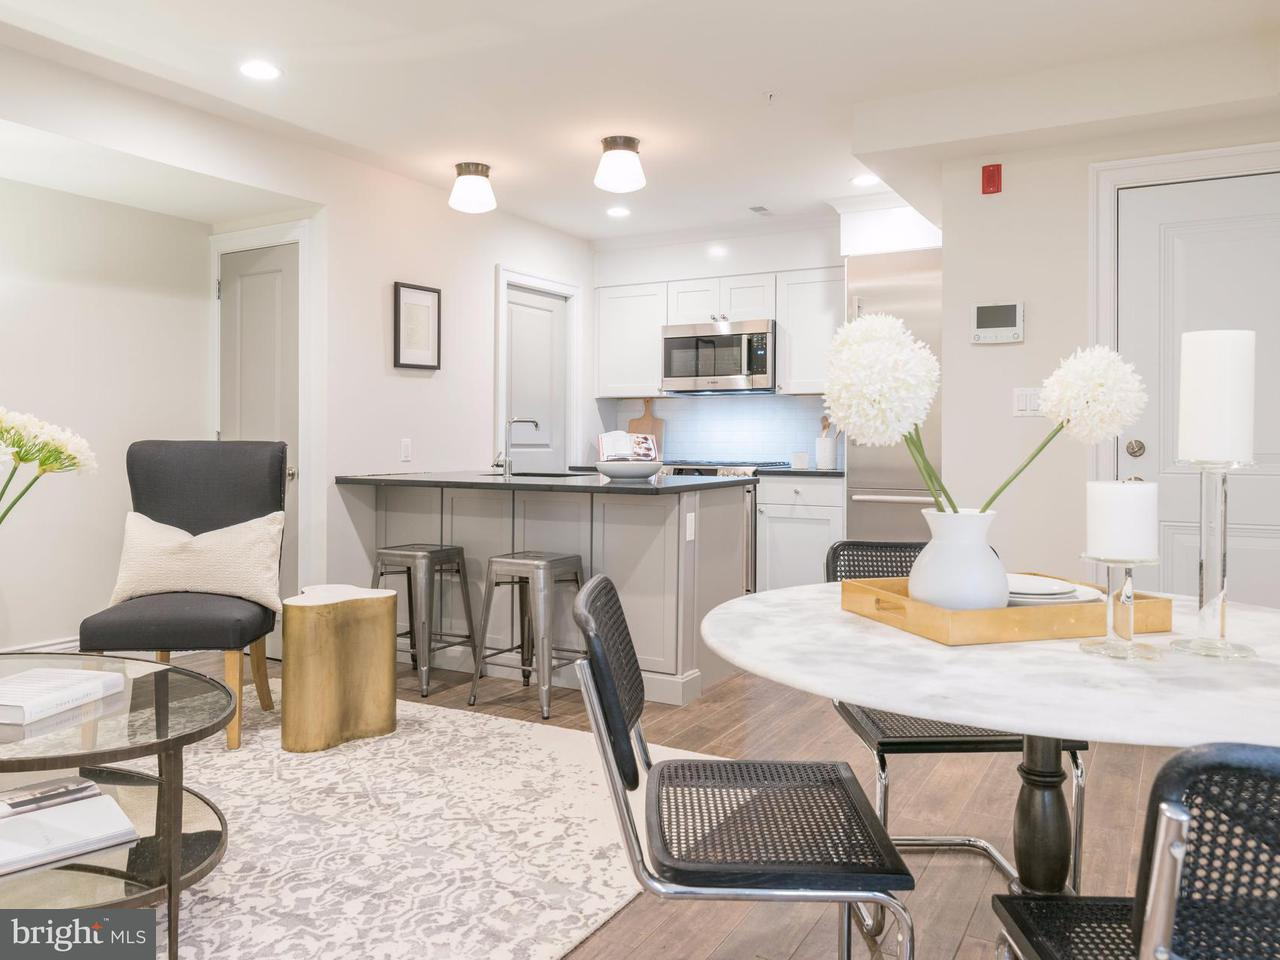 Townhouse for Sale at 1848 BILTMORE ST NW #2 1848 BILTMORE ST NW #2 Washington, District Of Columbia 20009 United States